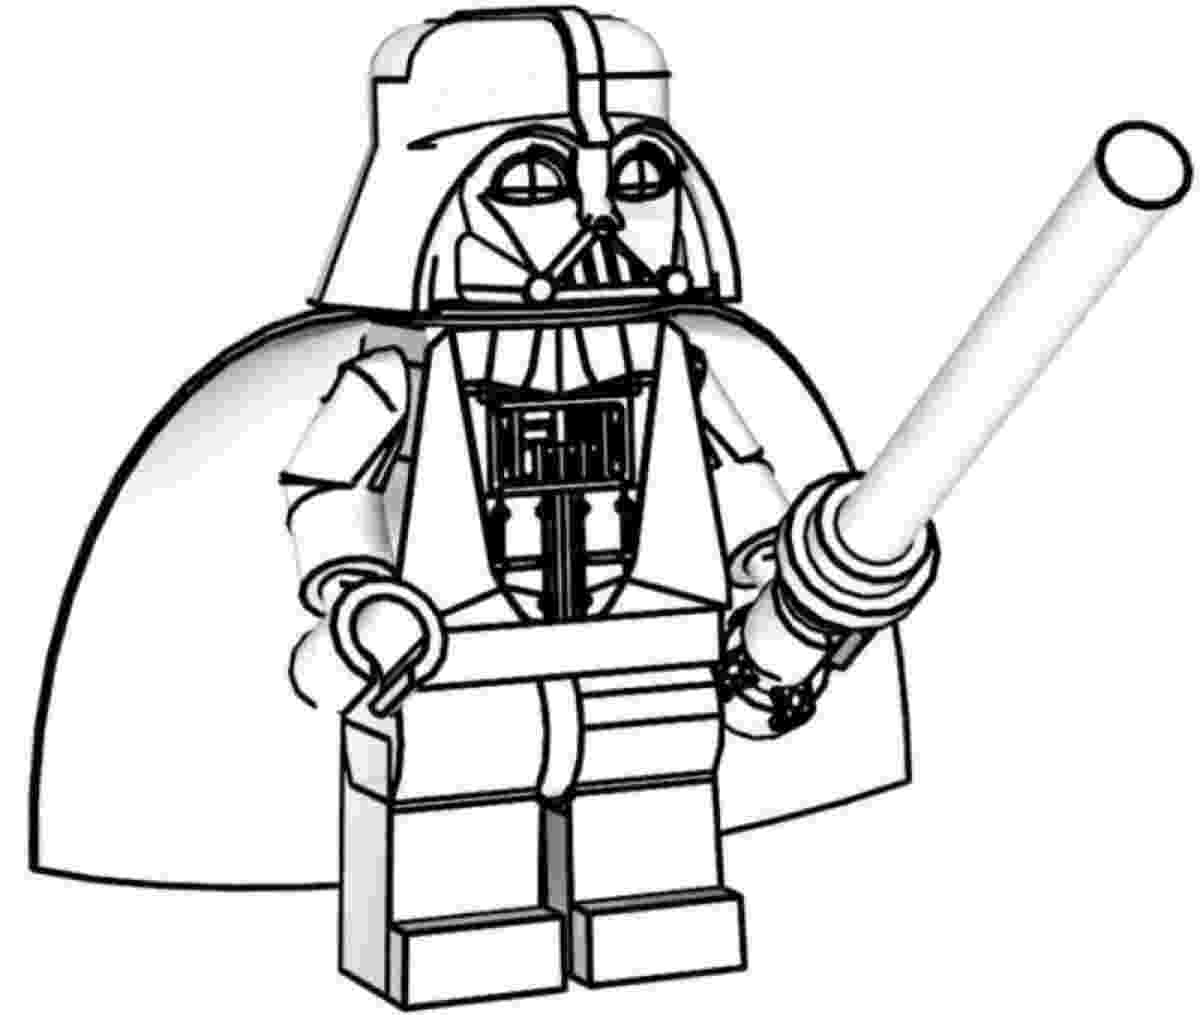 darth vader pictures to color 331 best movies and tv show coloring pages images on pinterest to vader darth pictures color